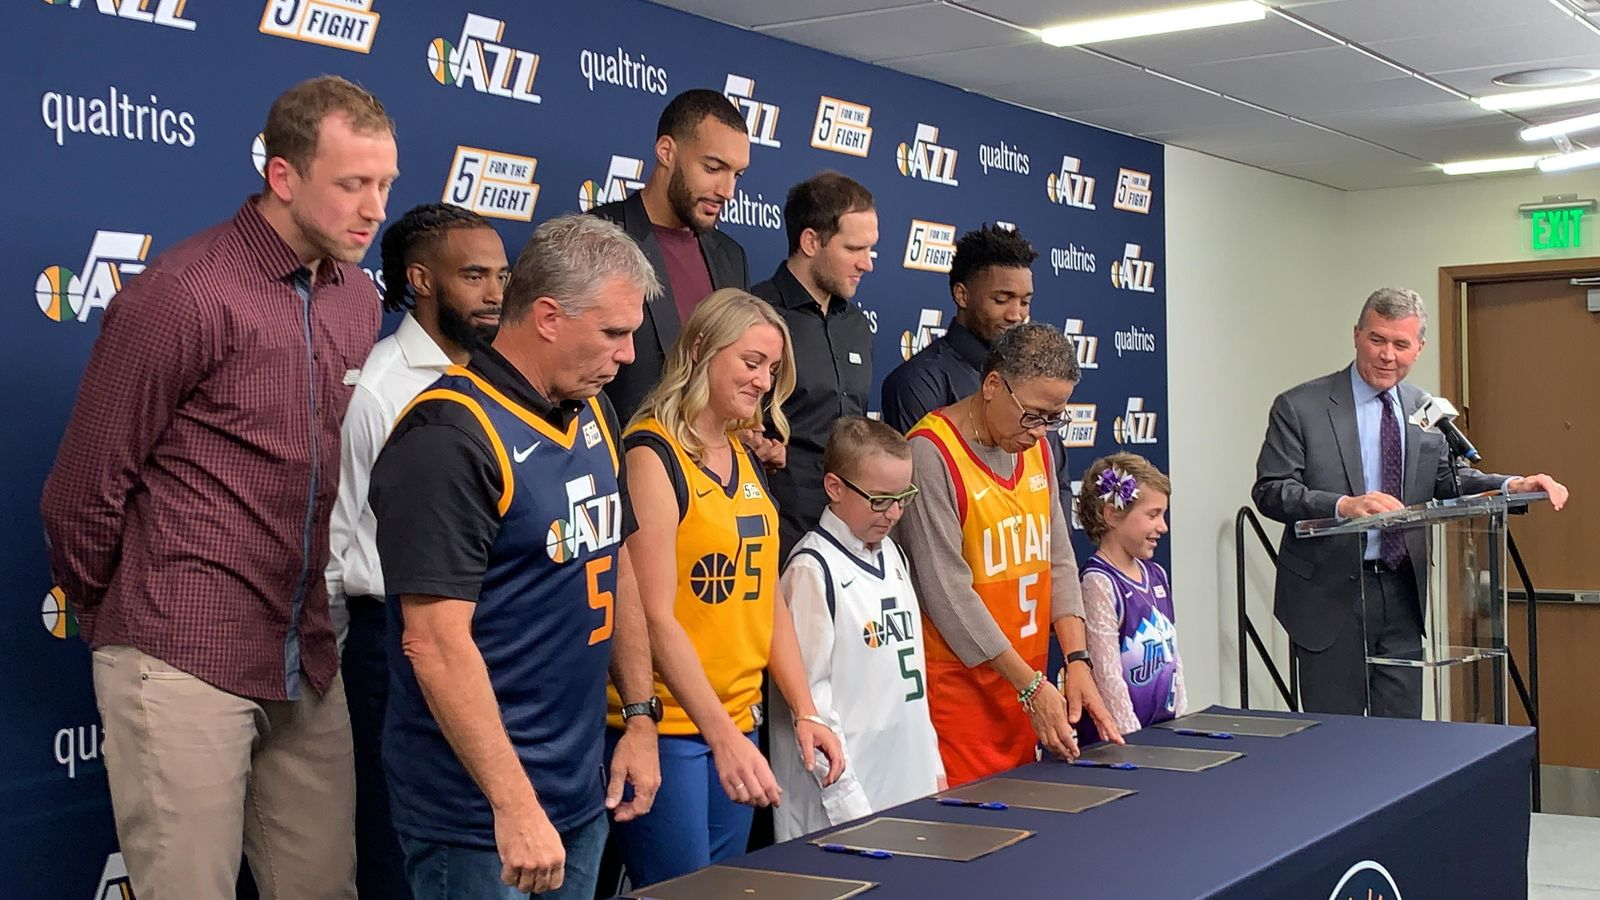 "Everyone poses for a photo op promoting ""5 For The Fight"" which aims to fund cancer research. (L-R) Joe Ingles (Jazz forward), Dave Warren (cancer fighter), Mike Conley (Jazz point guard), Dani Phillips (cancer fighter), Rudy Gobert (2-time Defensive Player of the Year, Utah Jazz Center) with Wyatt Page (young cancer fighter), Emma Houston (cancer fighter), Bojan Bogdanovic (Utah Jazz forward), Donovan ""Spida"" Mitchell (Utah Jazz guard) with Baylee Semrow (young cancer fighter). (Photo: Adam Forgie, KUTV)"